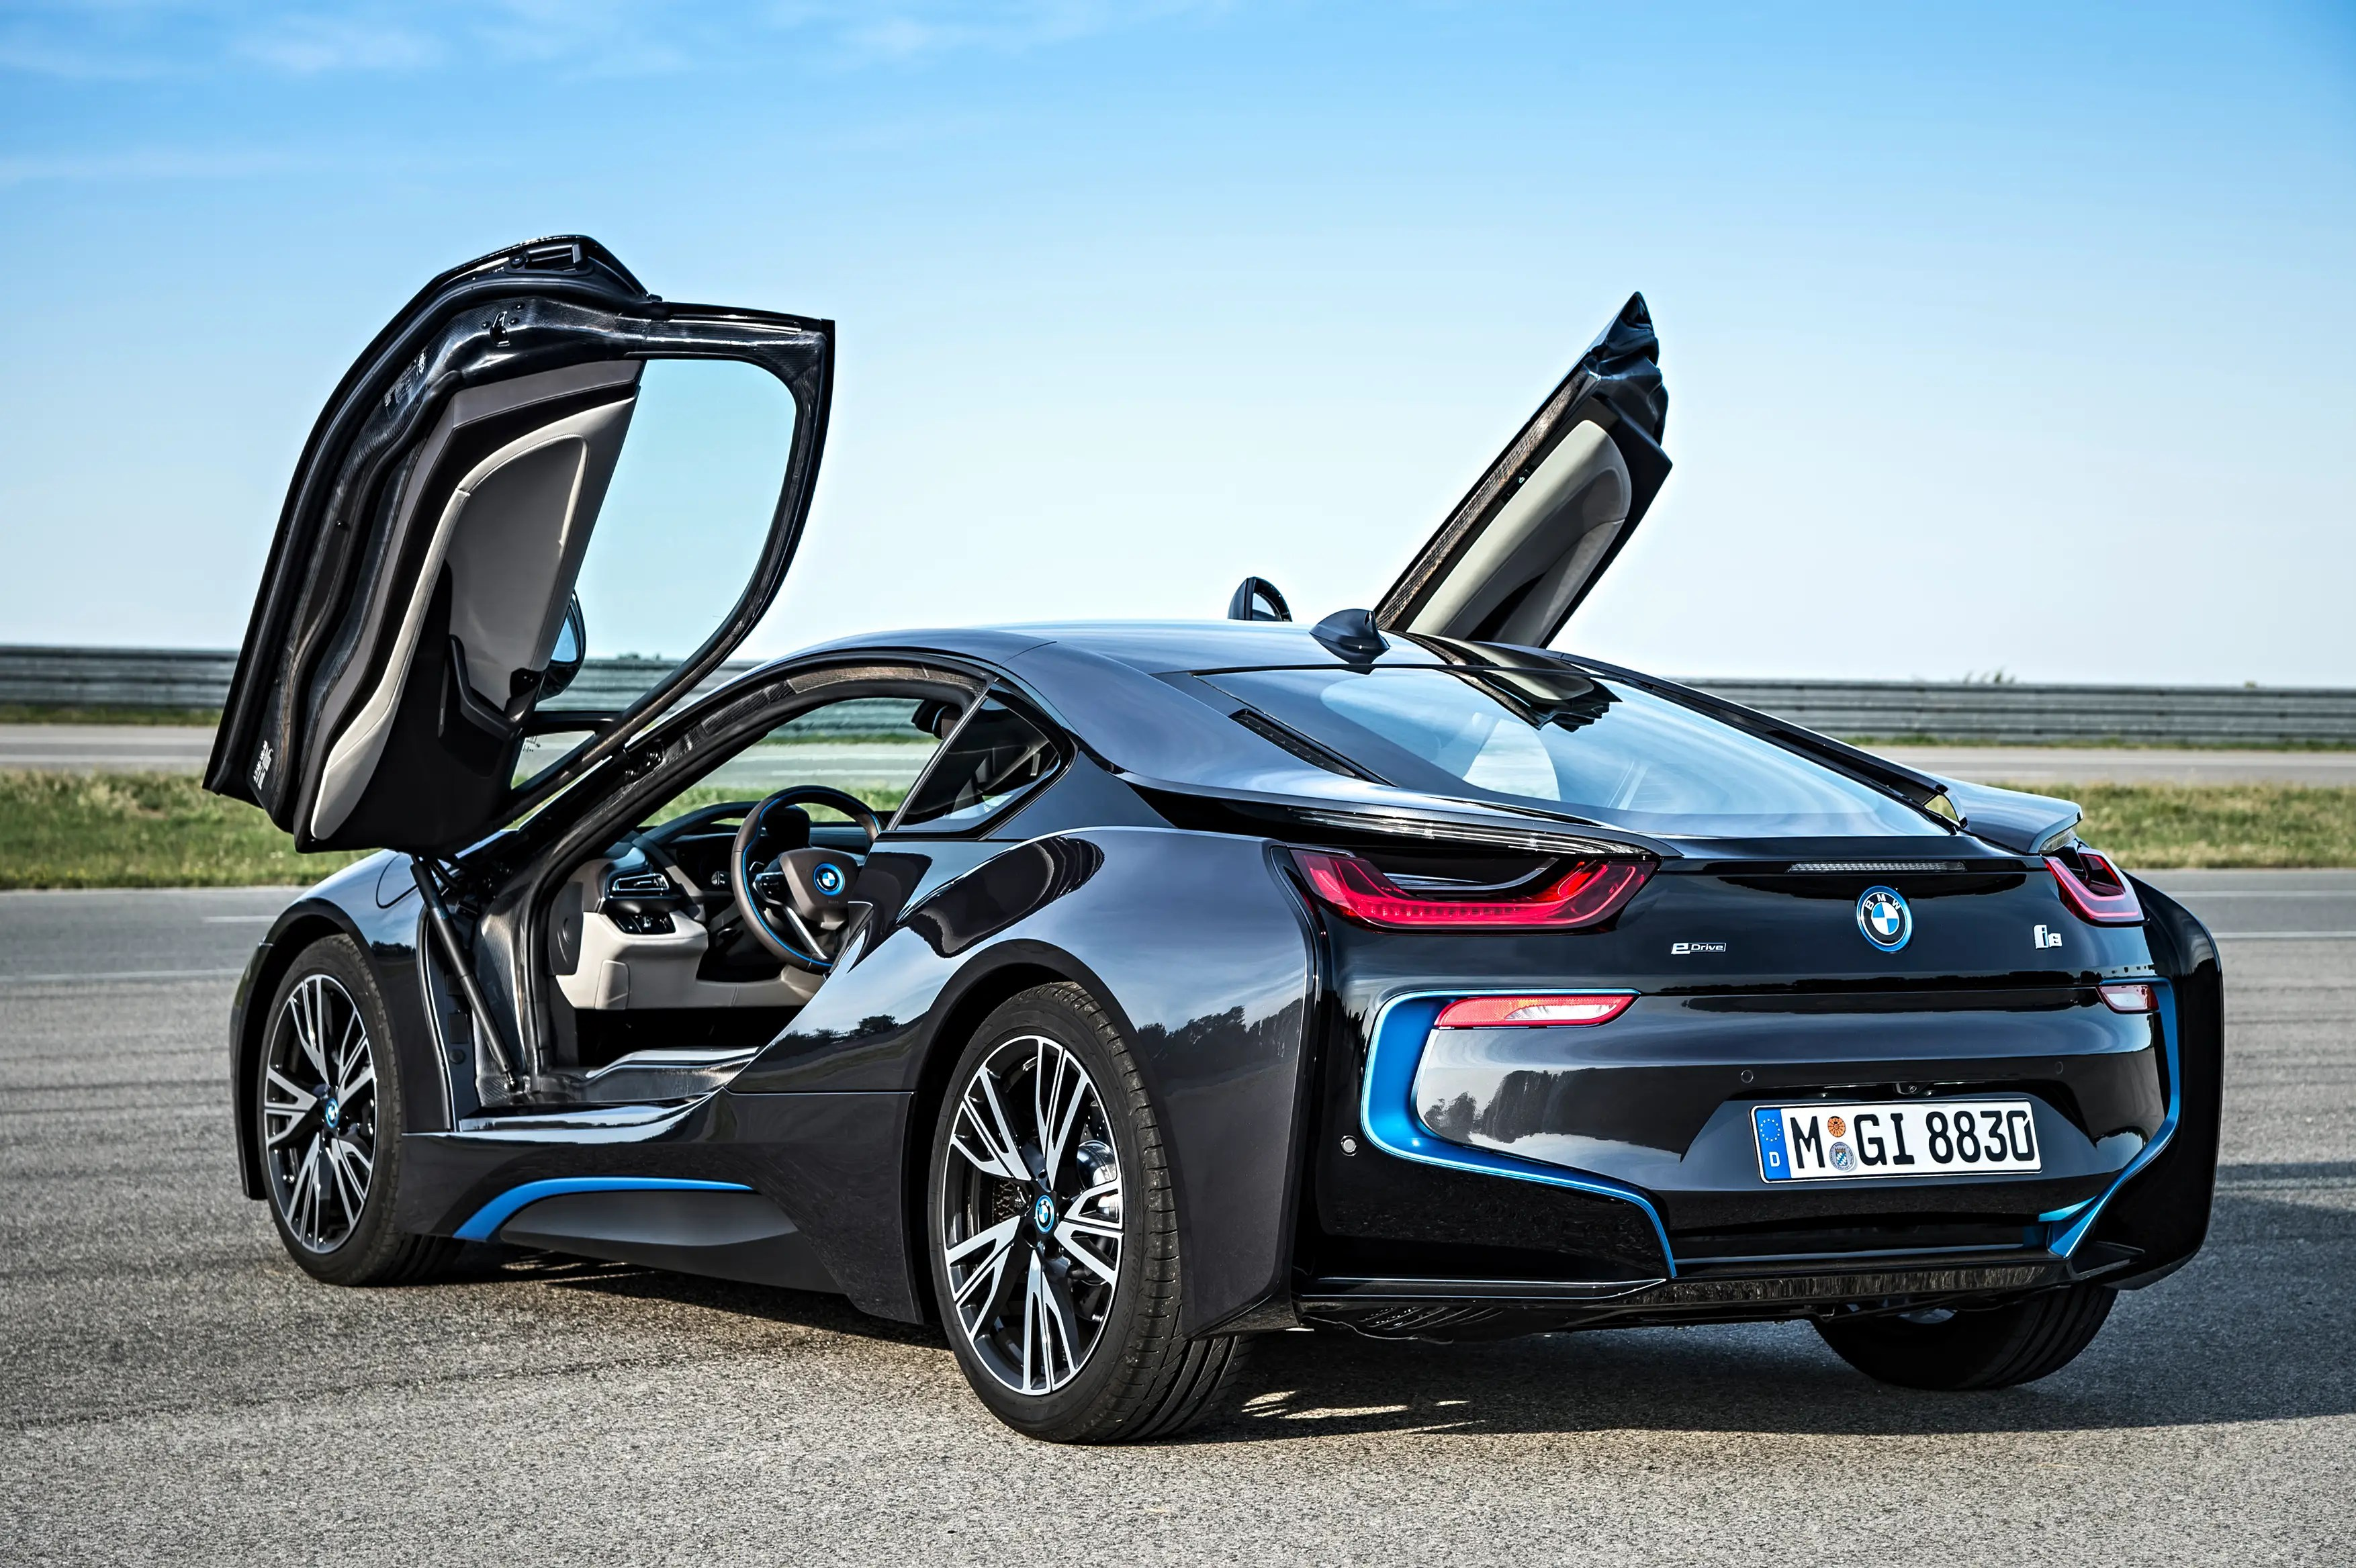 With the i8, BMW has successfully blended a cacophony of materials, textures, and angles to create a harmonious composition.